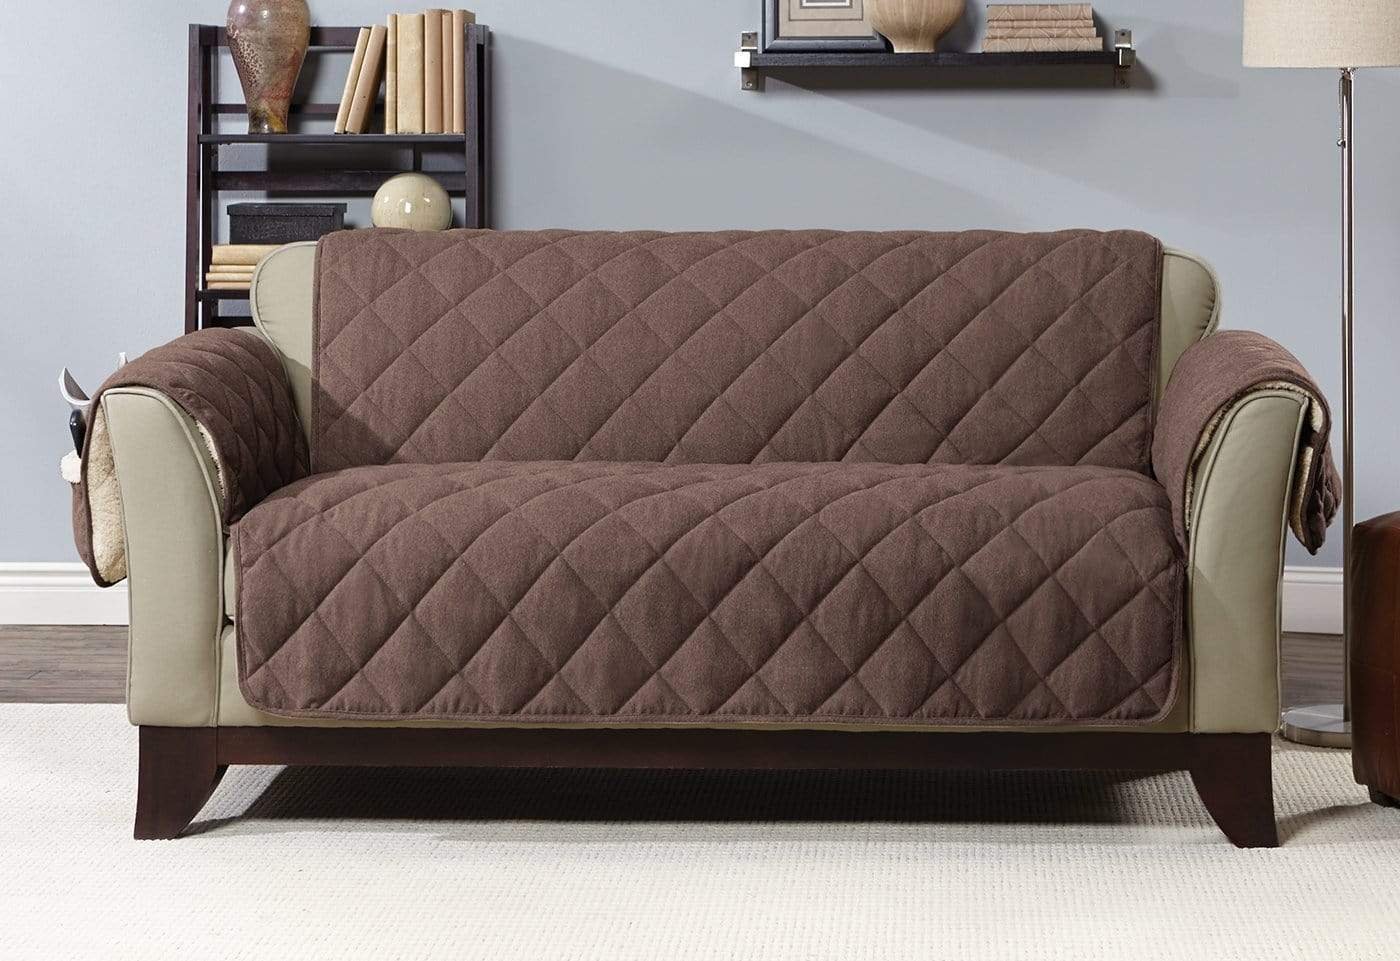 Flannel & Sherpa Loveseat Furniture Cover 100% Polyester Pet Furniture Cover Machine Washable - Loveseat / Chocolate